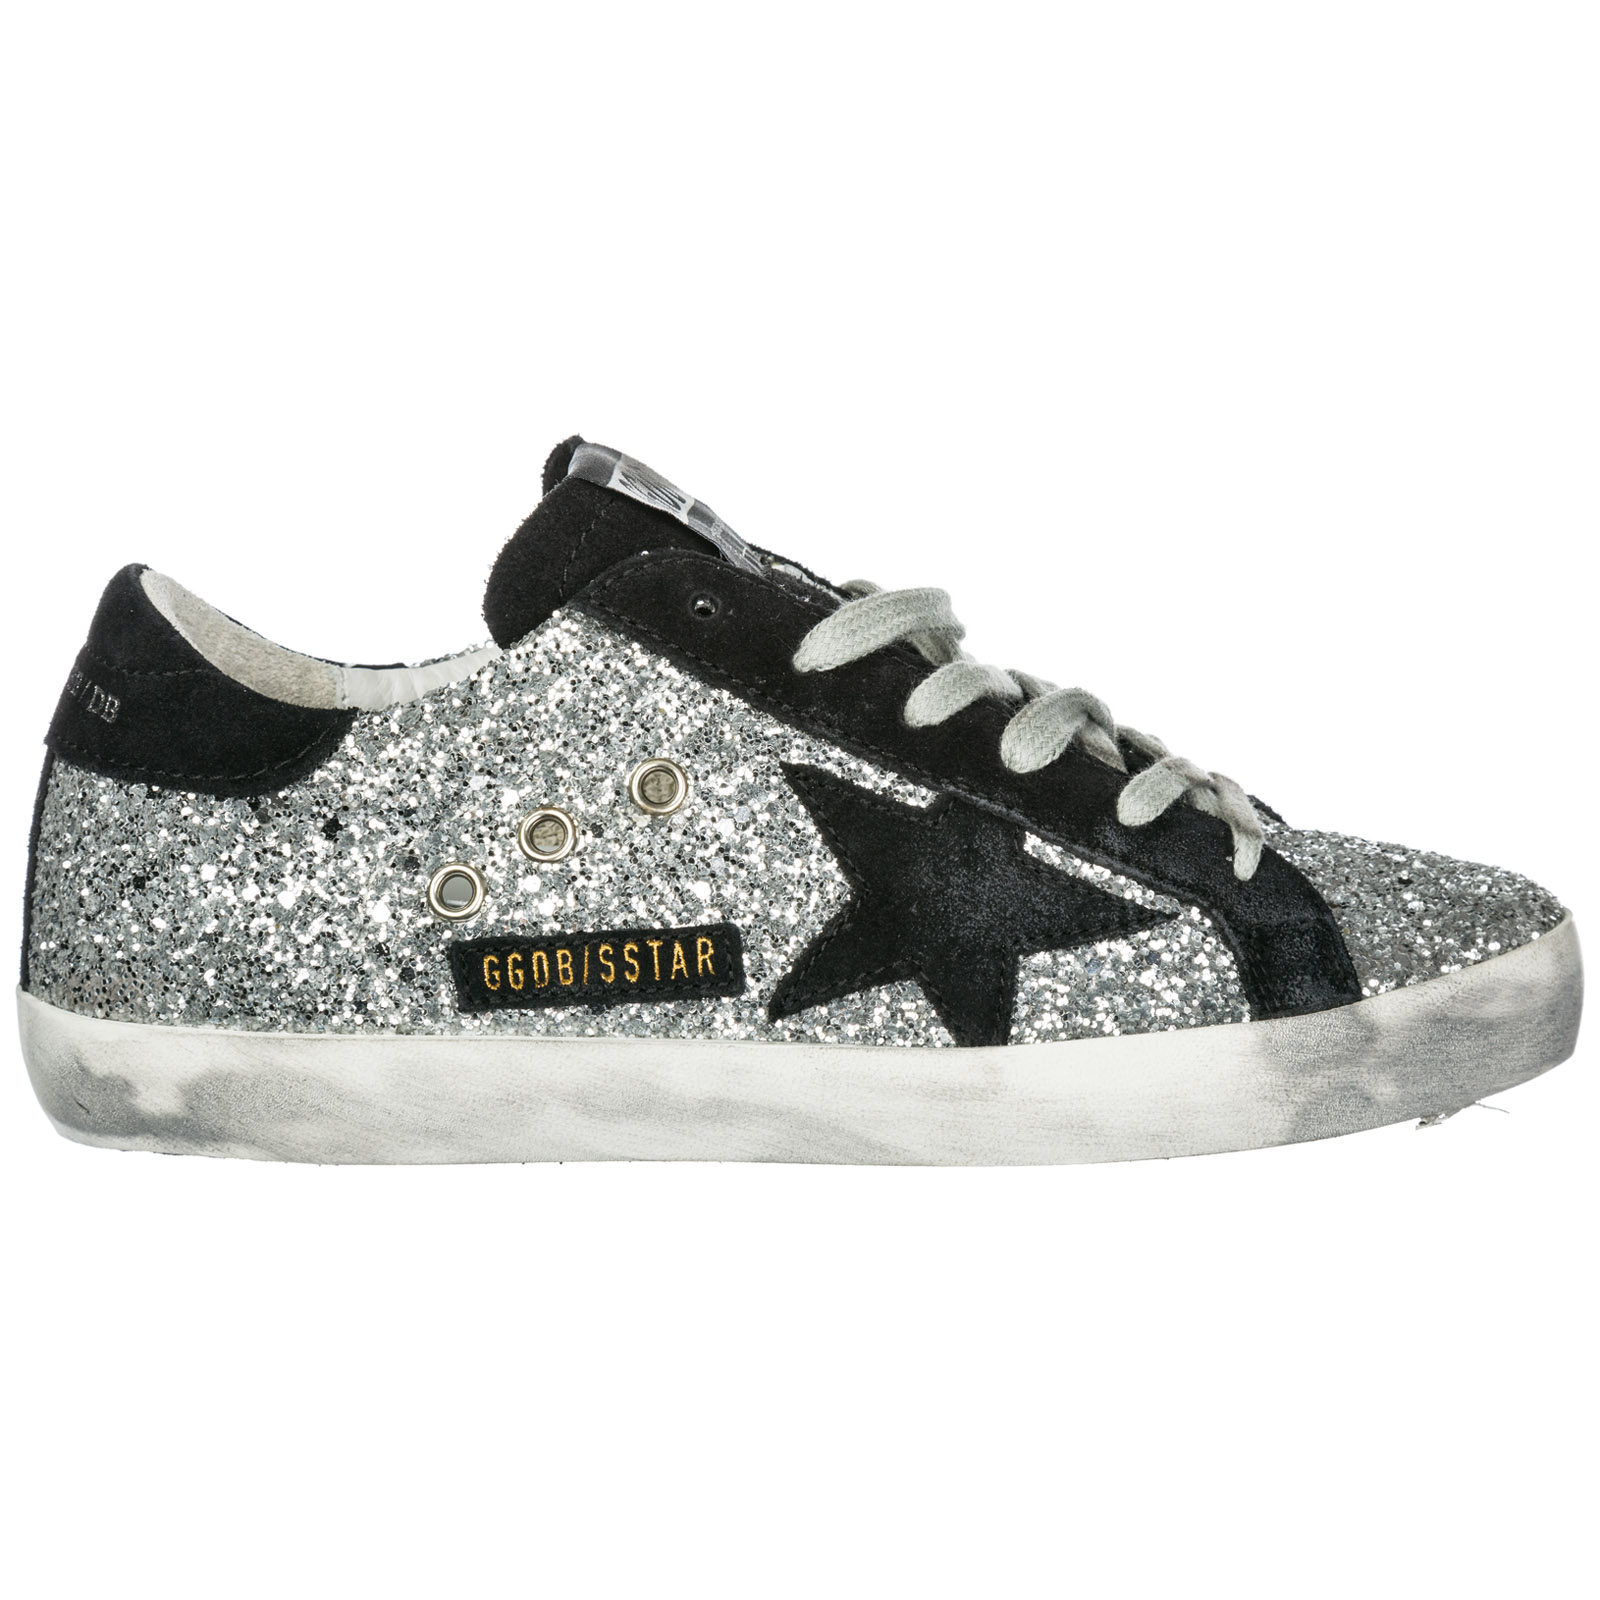 Women's shoes suede trainers sneakers superstar